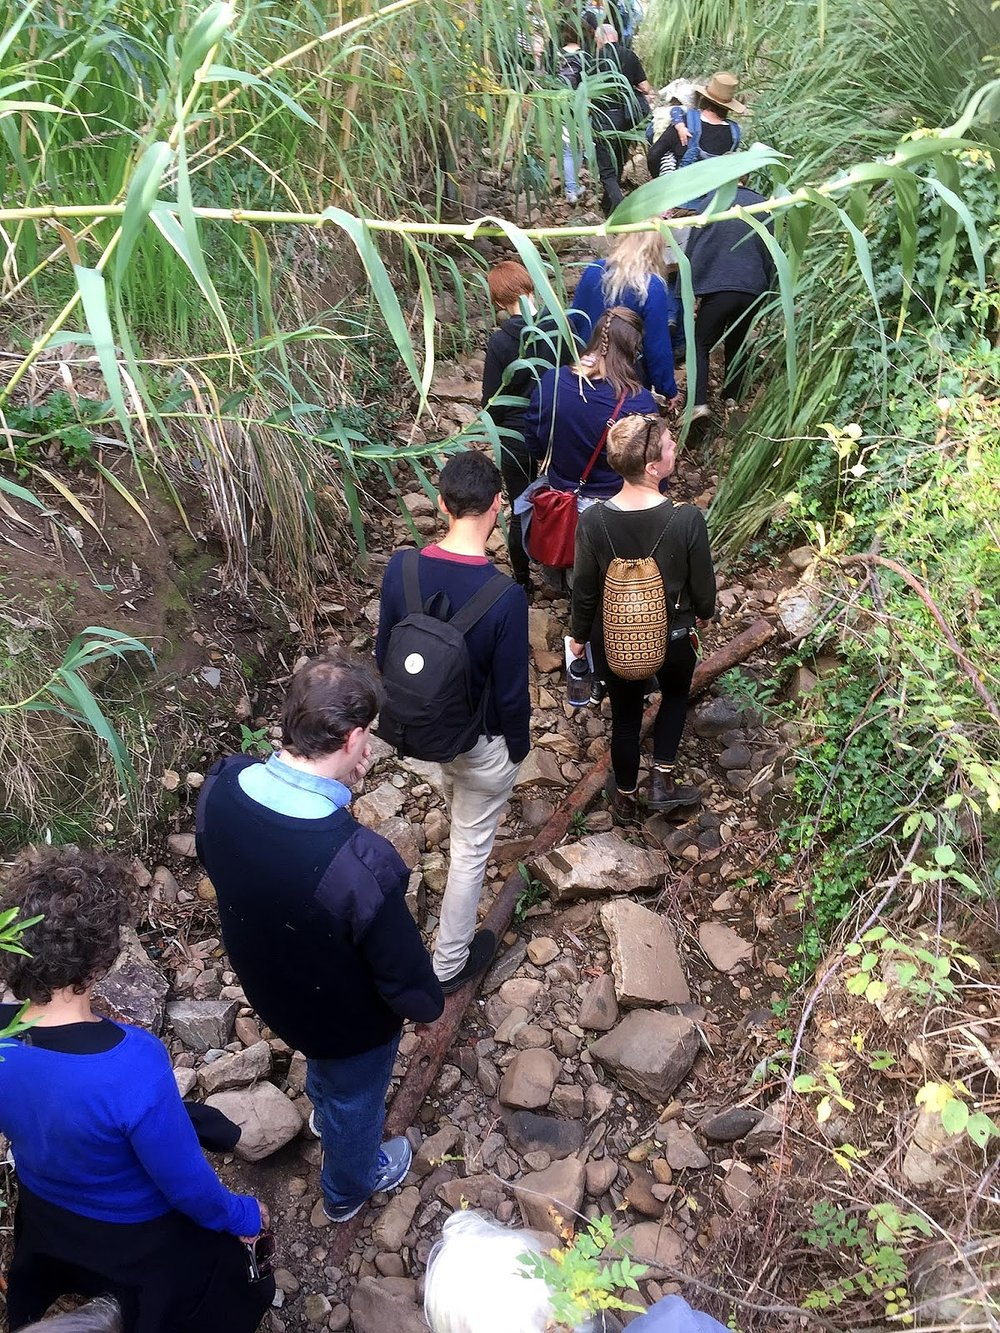 Laura Wills's participants walking through the creek.